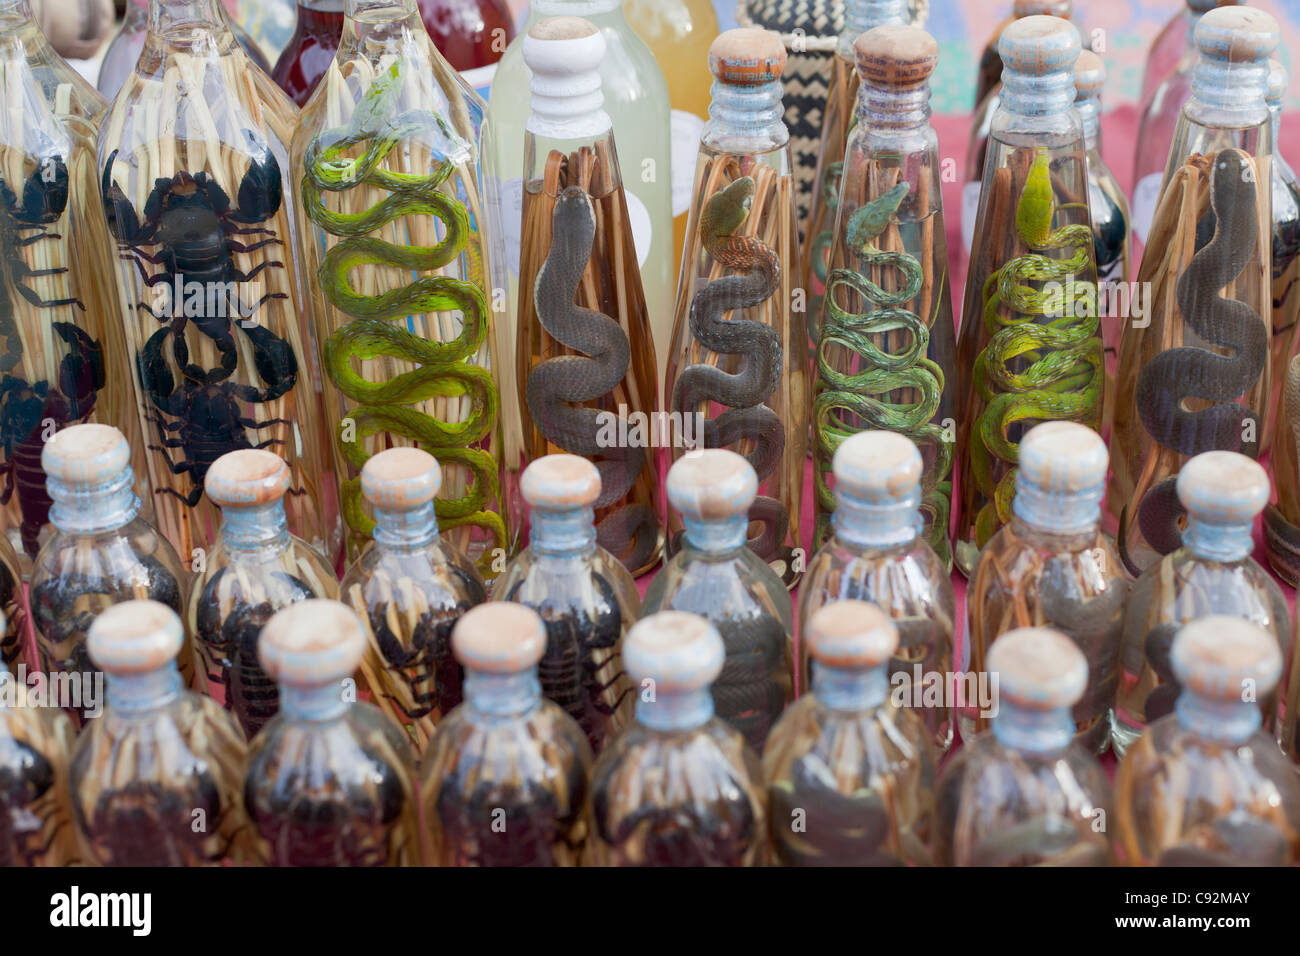 Laotian rum with snakes on display at a market stall, Laos - Stock Image